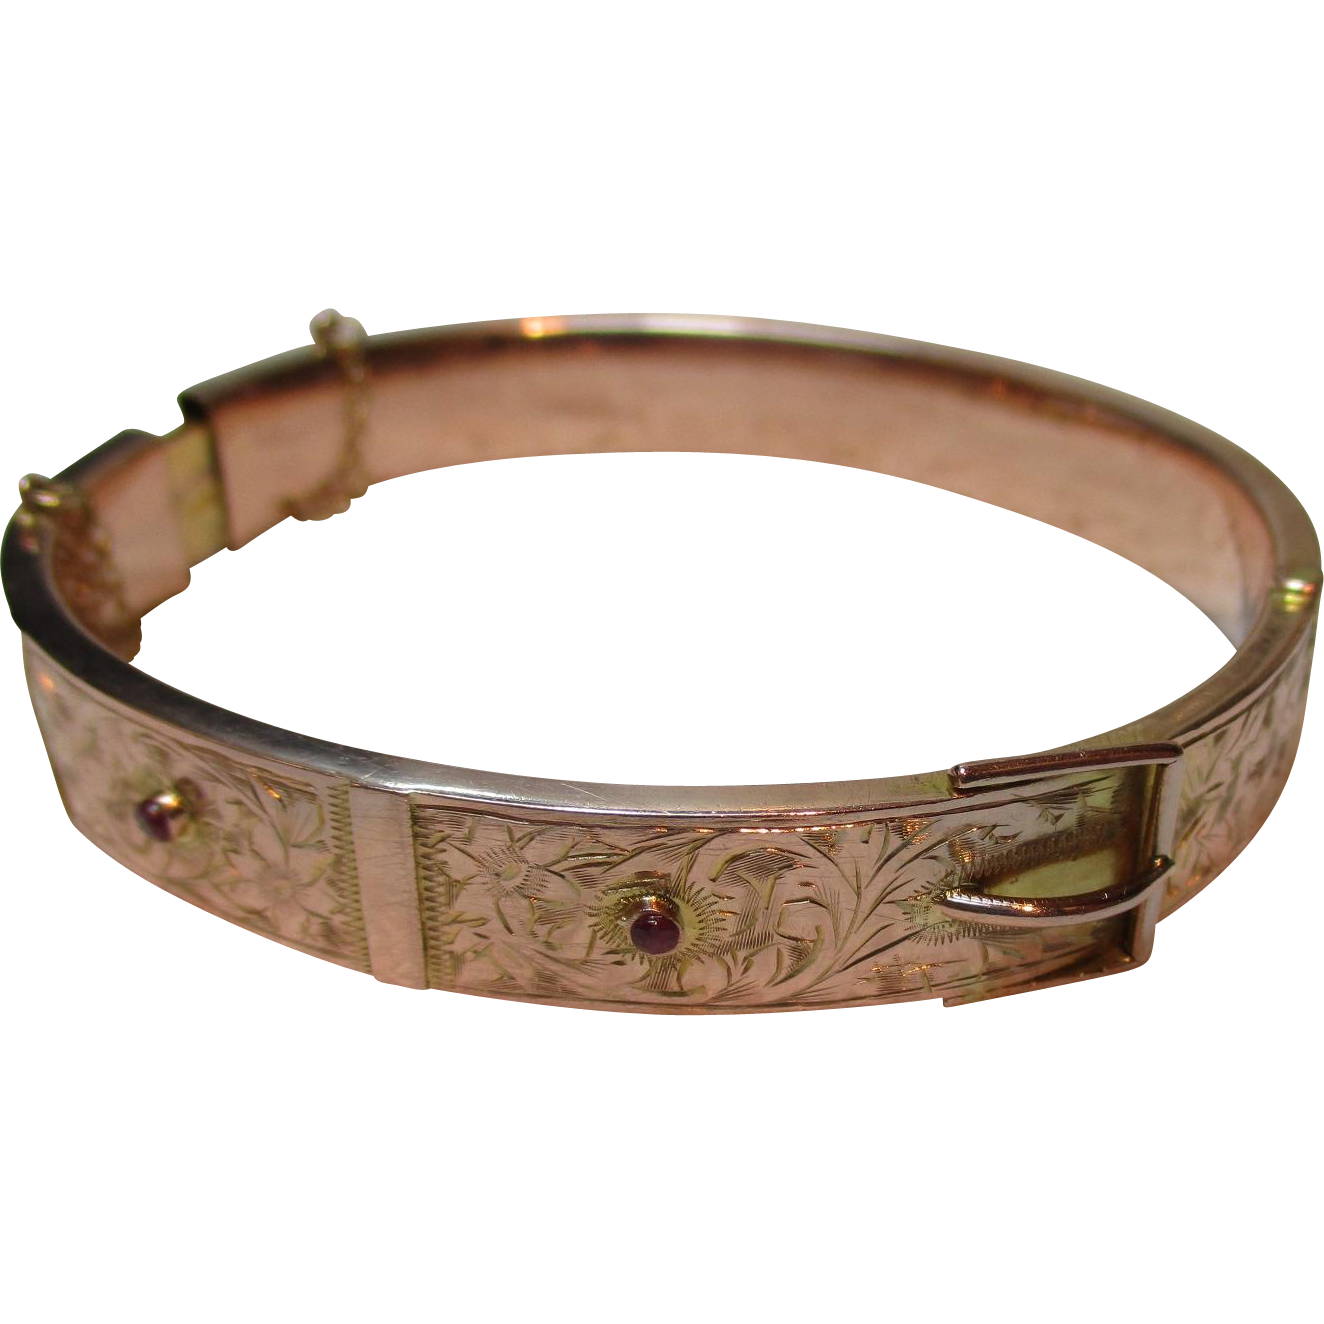 Decorative Edwardian{Chester 1906} 9ct Rose Gold Ruby Gemstone Buckle Bangle{13.9 Grams}